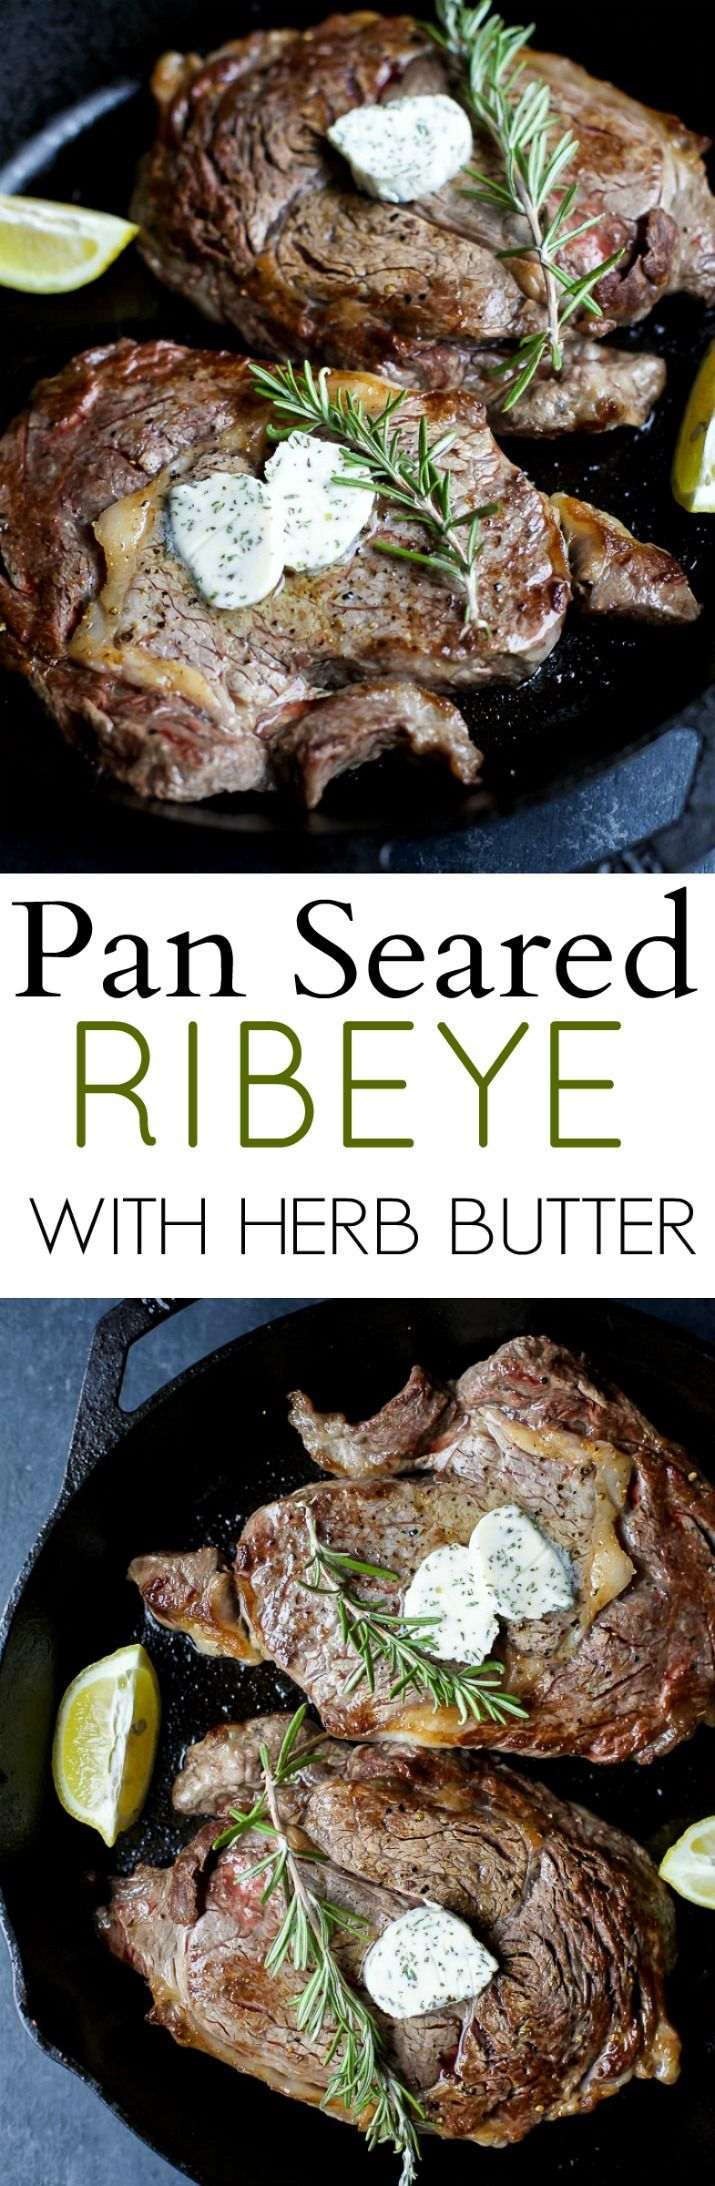 The perfect steak in just 15 minutes! Pan Seared Ribeye that's finished off in the oven and topped with homemade Herb Butter that will make you swoon! | joyfulhealthyeats.com #glutenfree